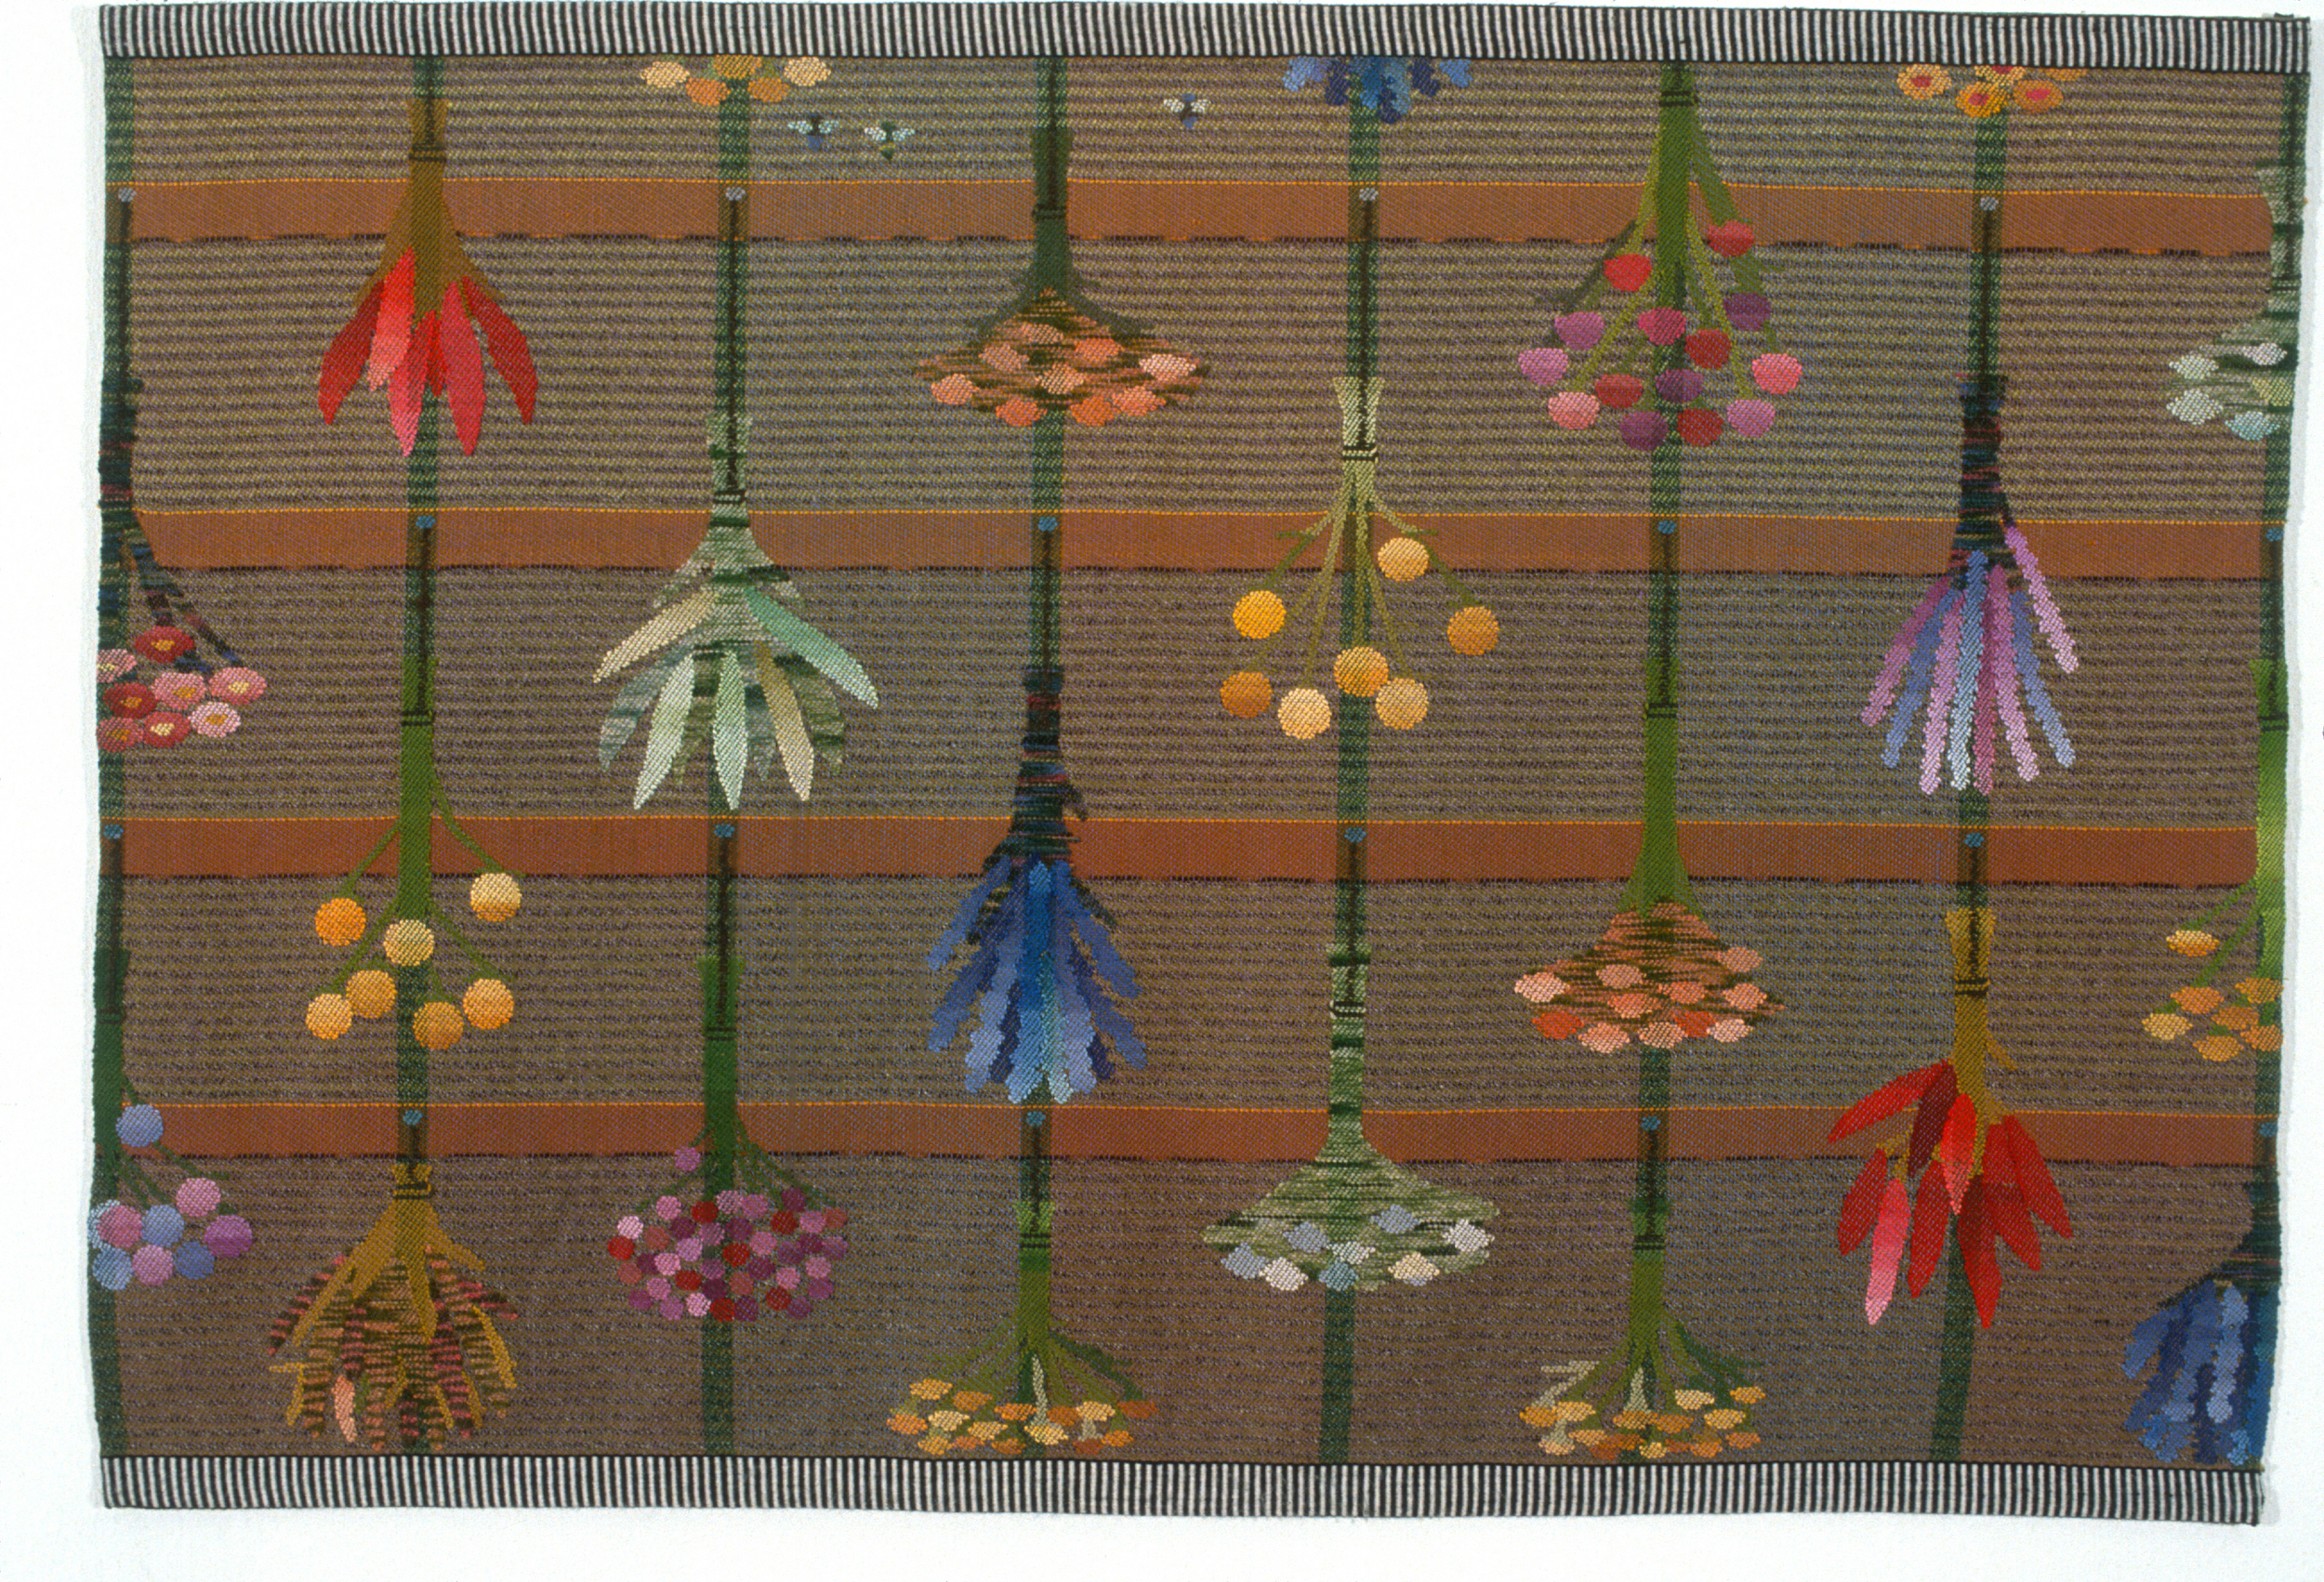 The Flower Drying Room